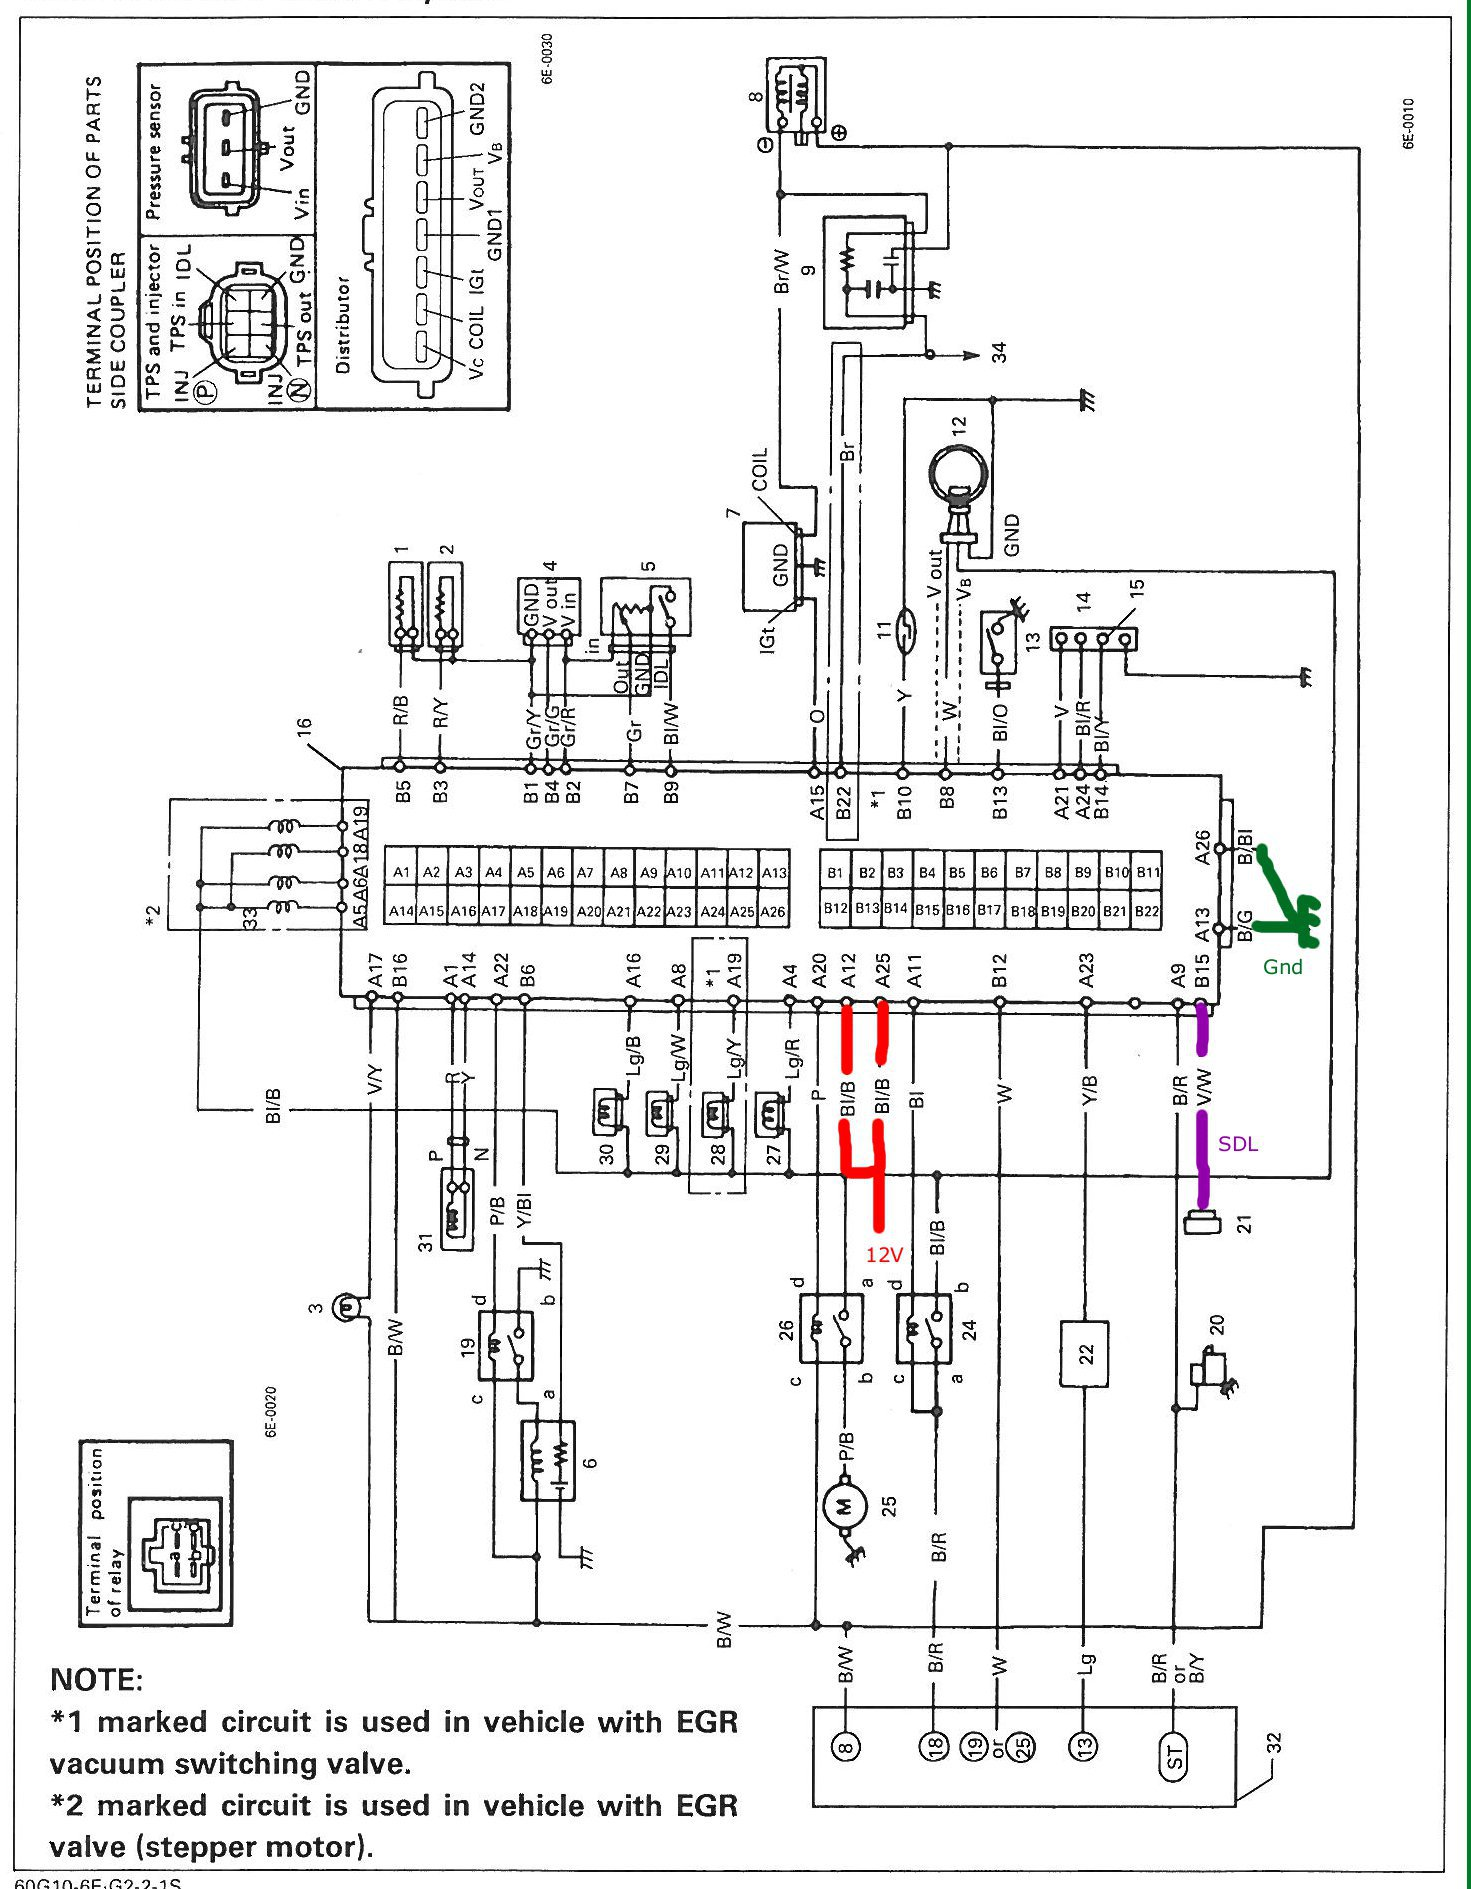 1990 Geo Metro Alternator Wiring Diagram Library Moreover Denso Ae 82 Toyota Corolla Free Engine Image